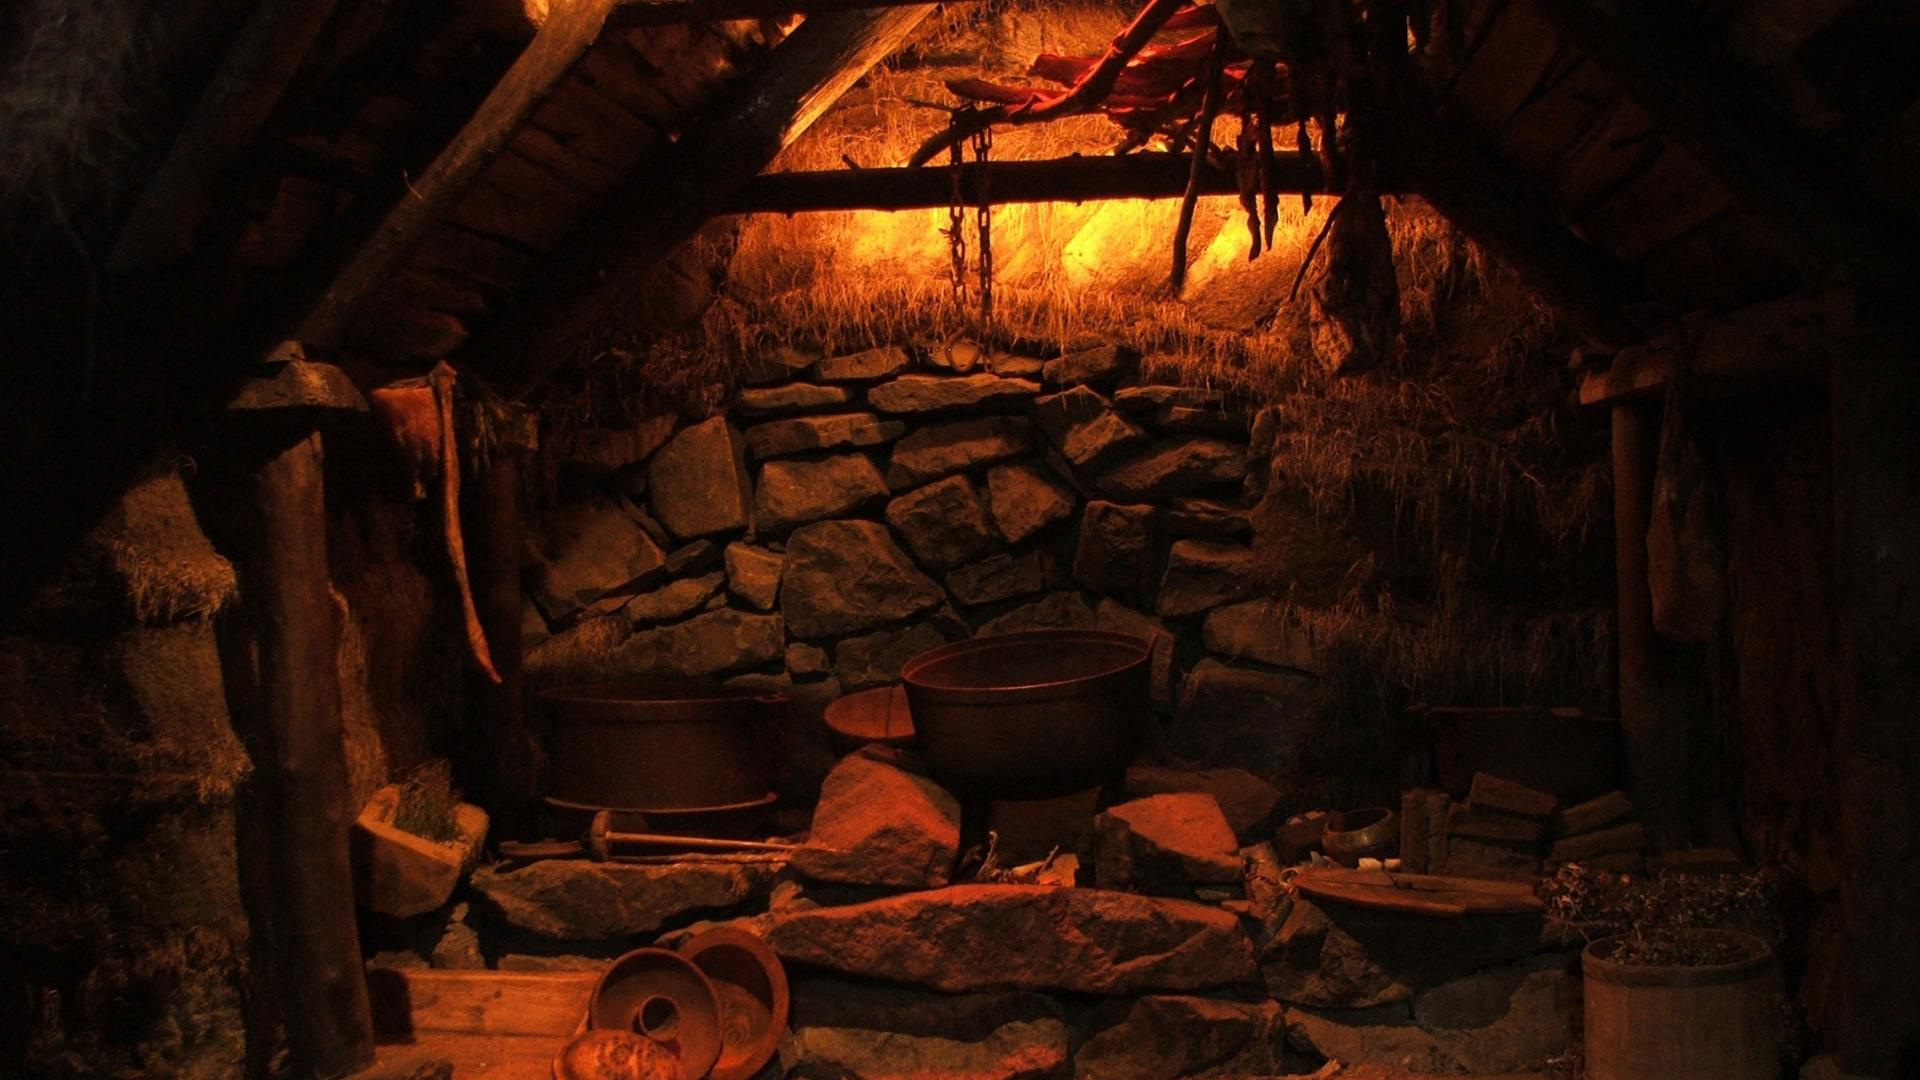 Indoors medieval cottage wiccan sigurour atlason wallpaper 31004 1920x1080